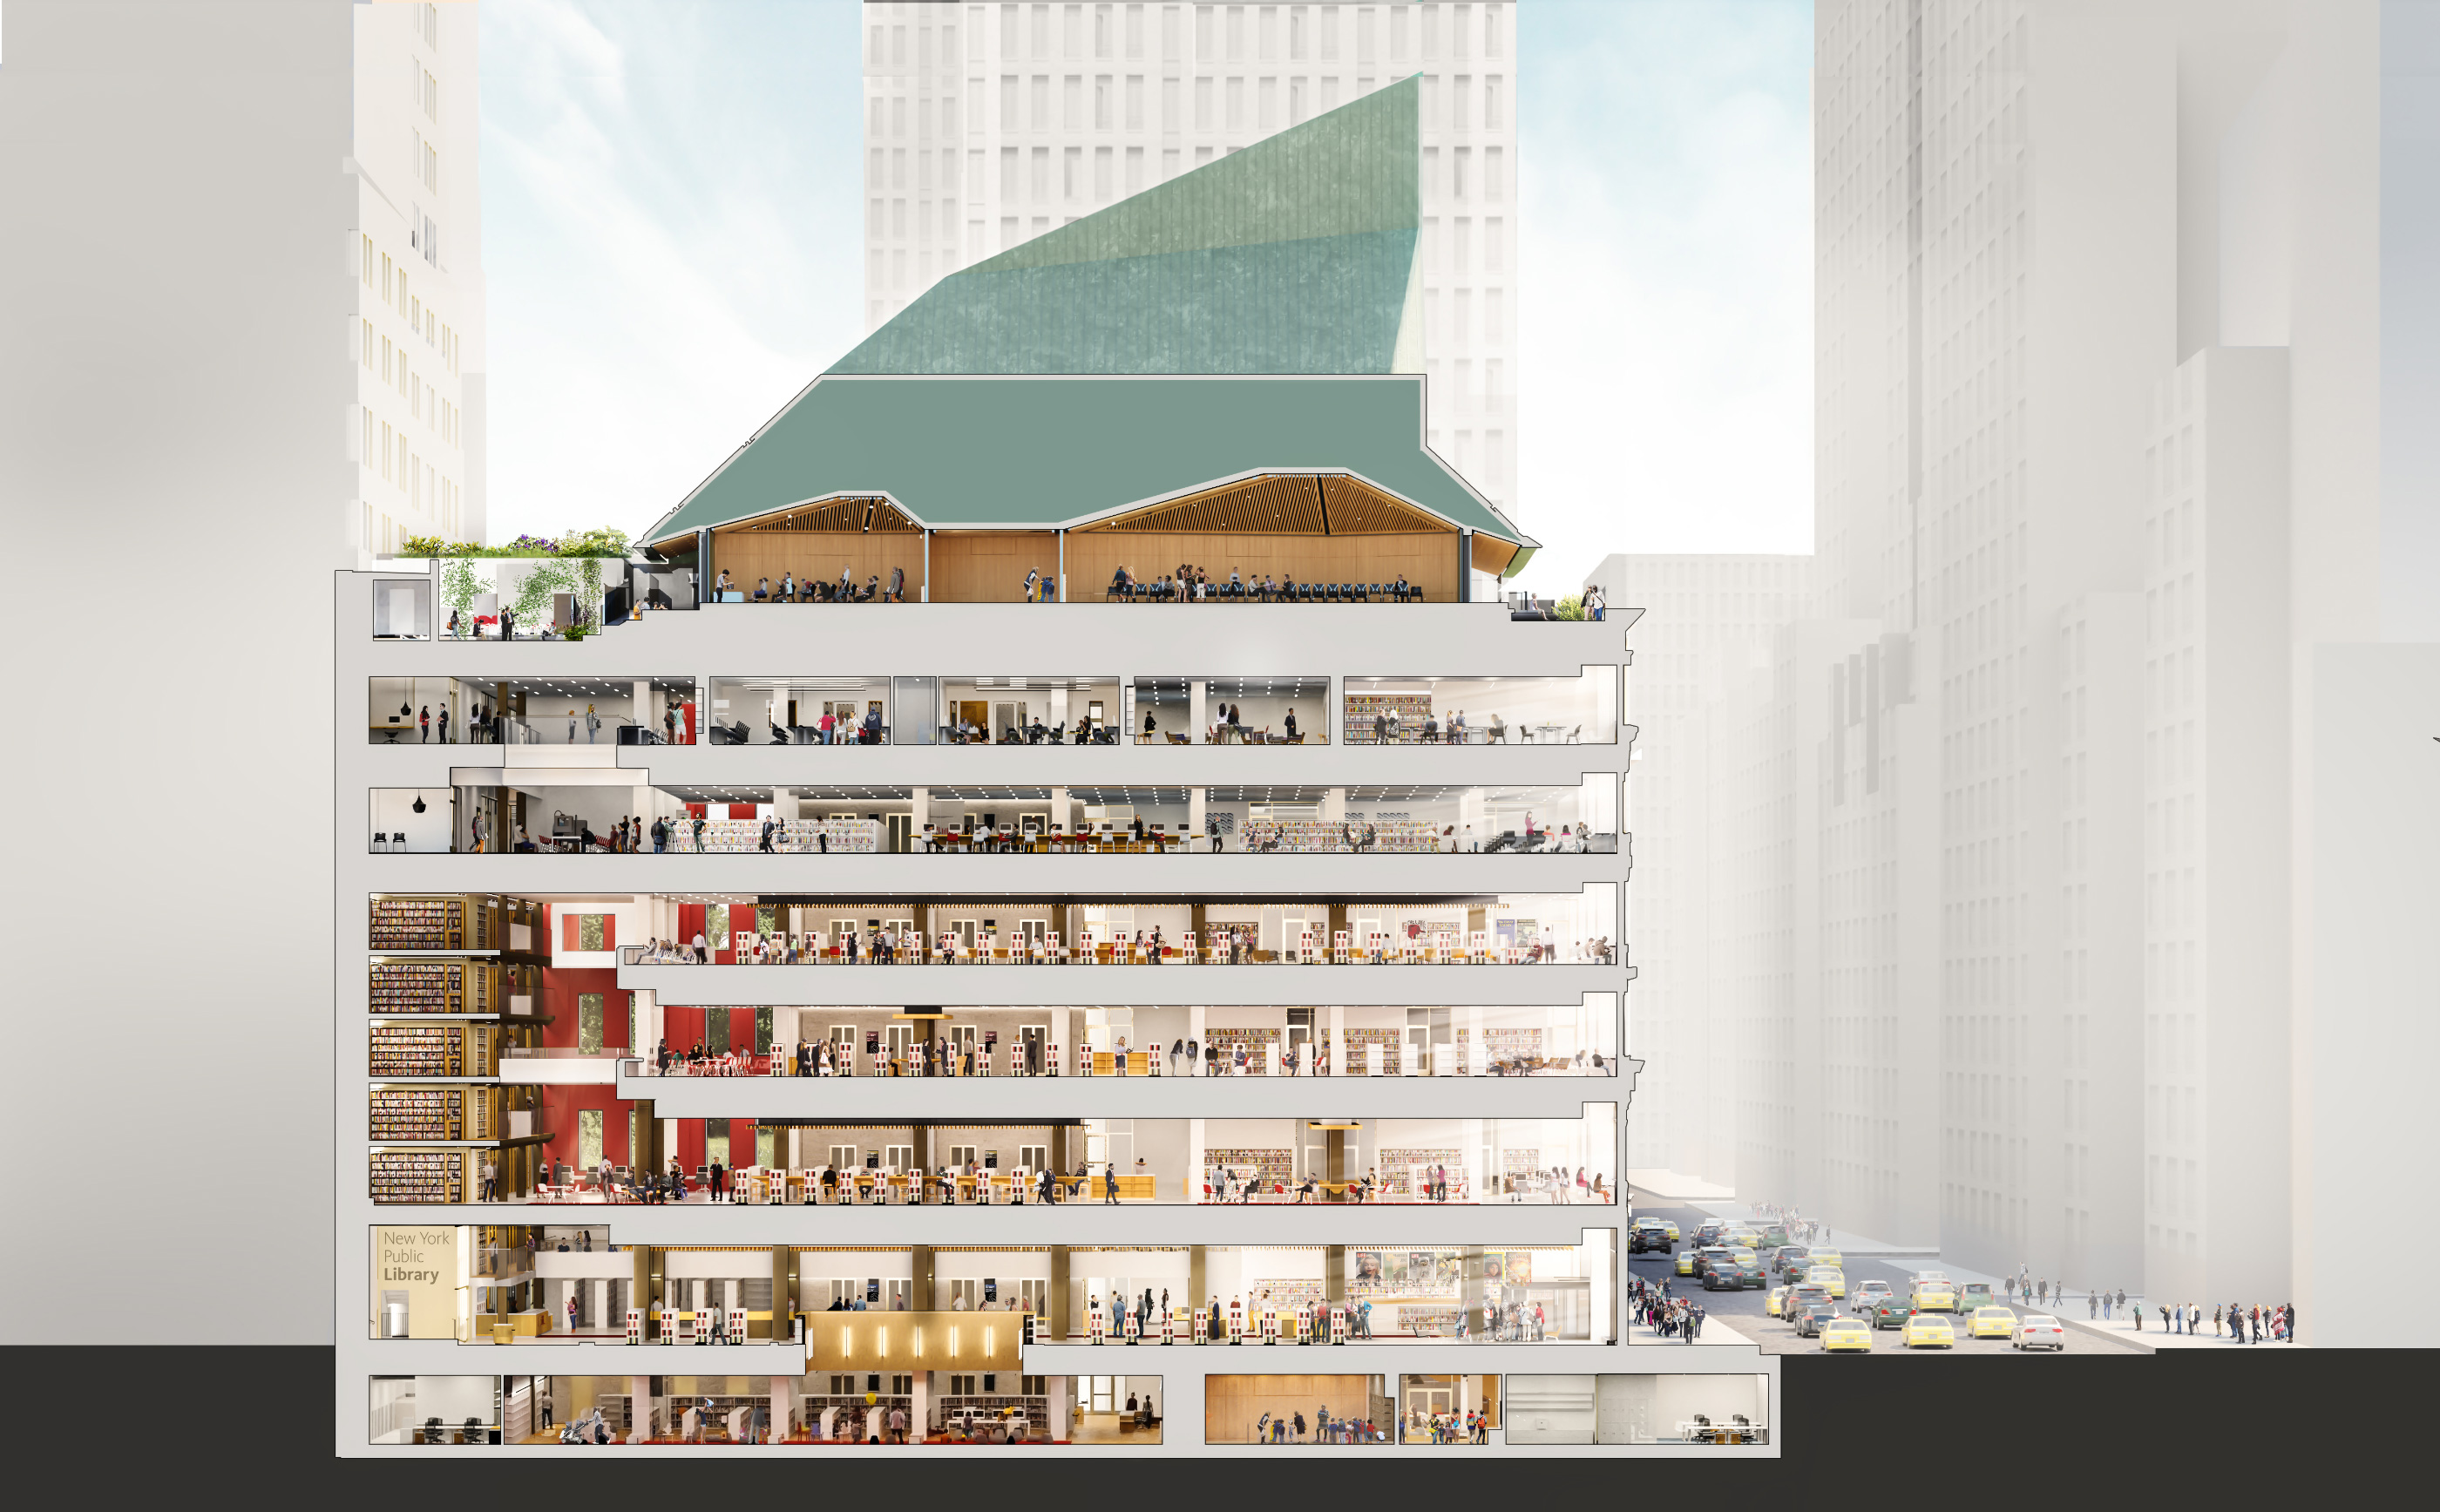 Cross-section of a six-story library with basement